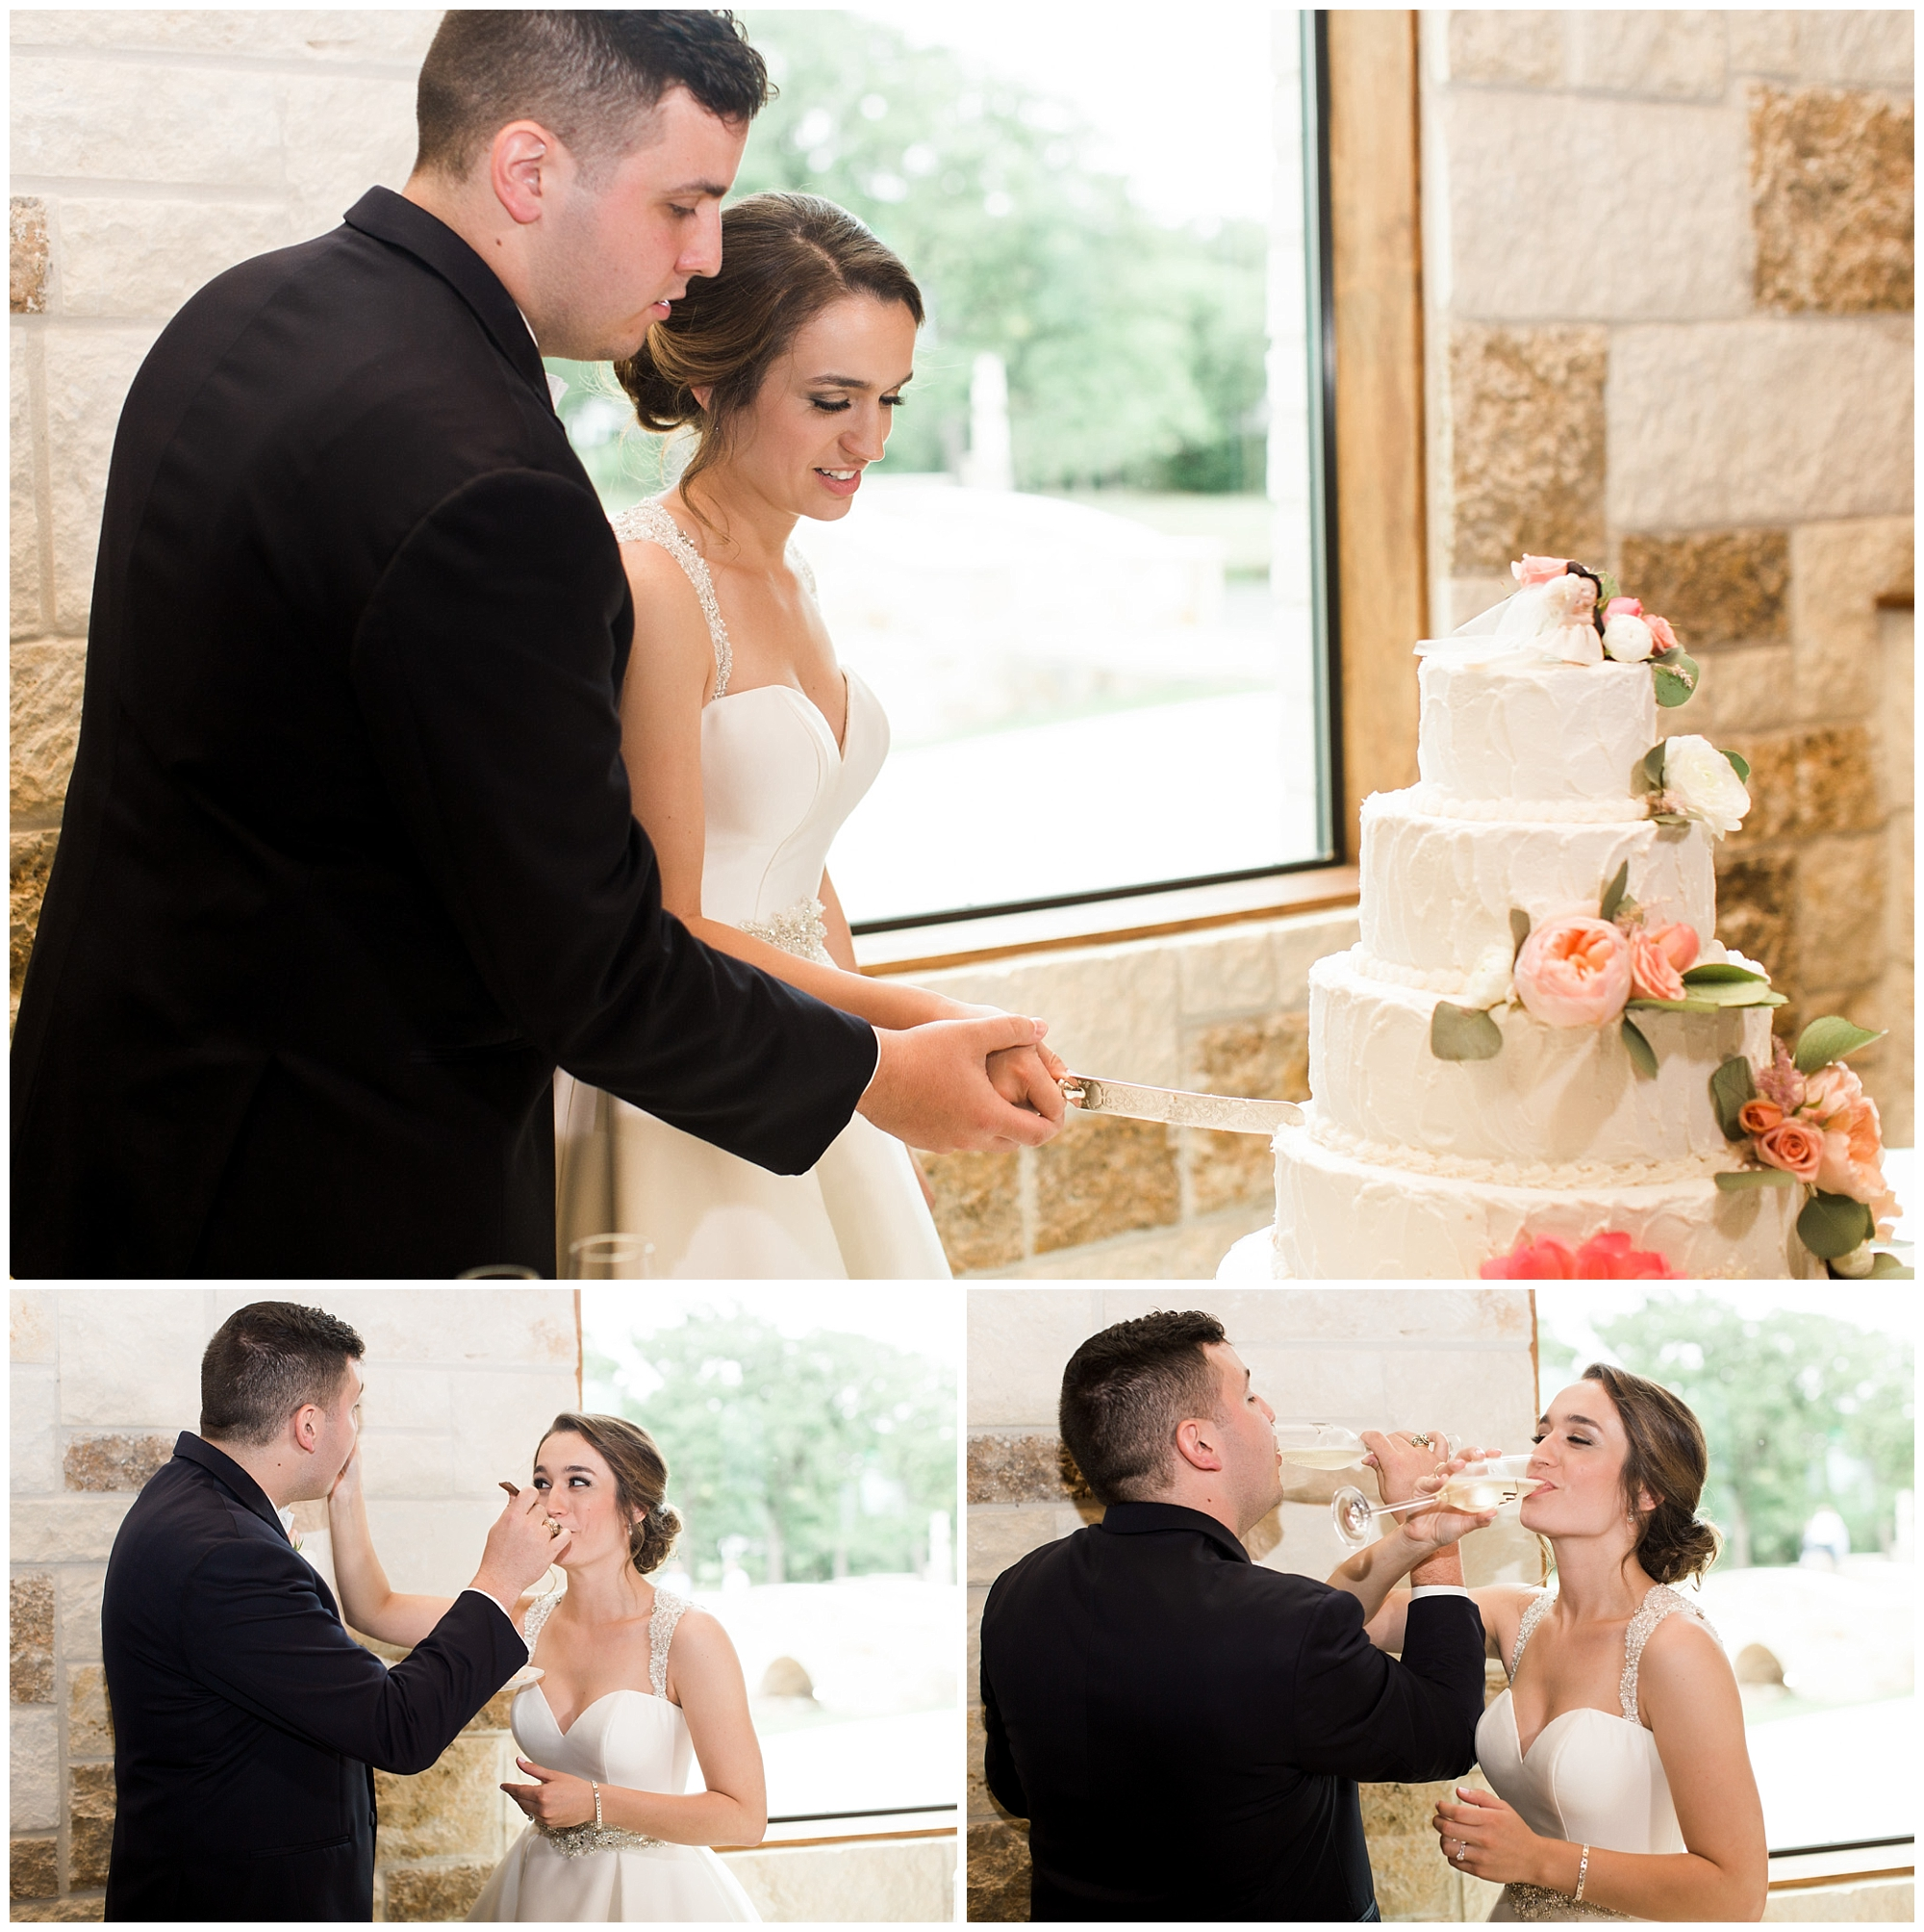 Brownstone_Reserve_Wedding_Kristina_Ross_Photography_0042.jpg